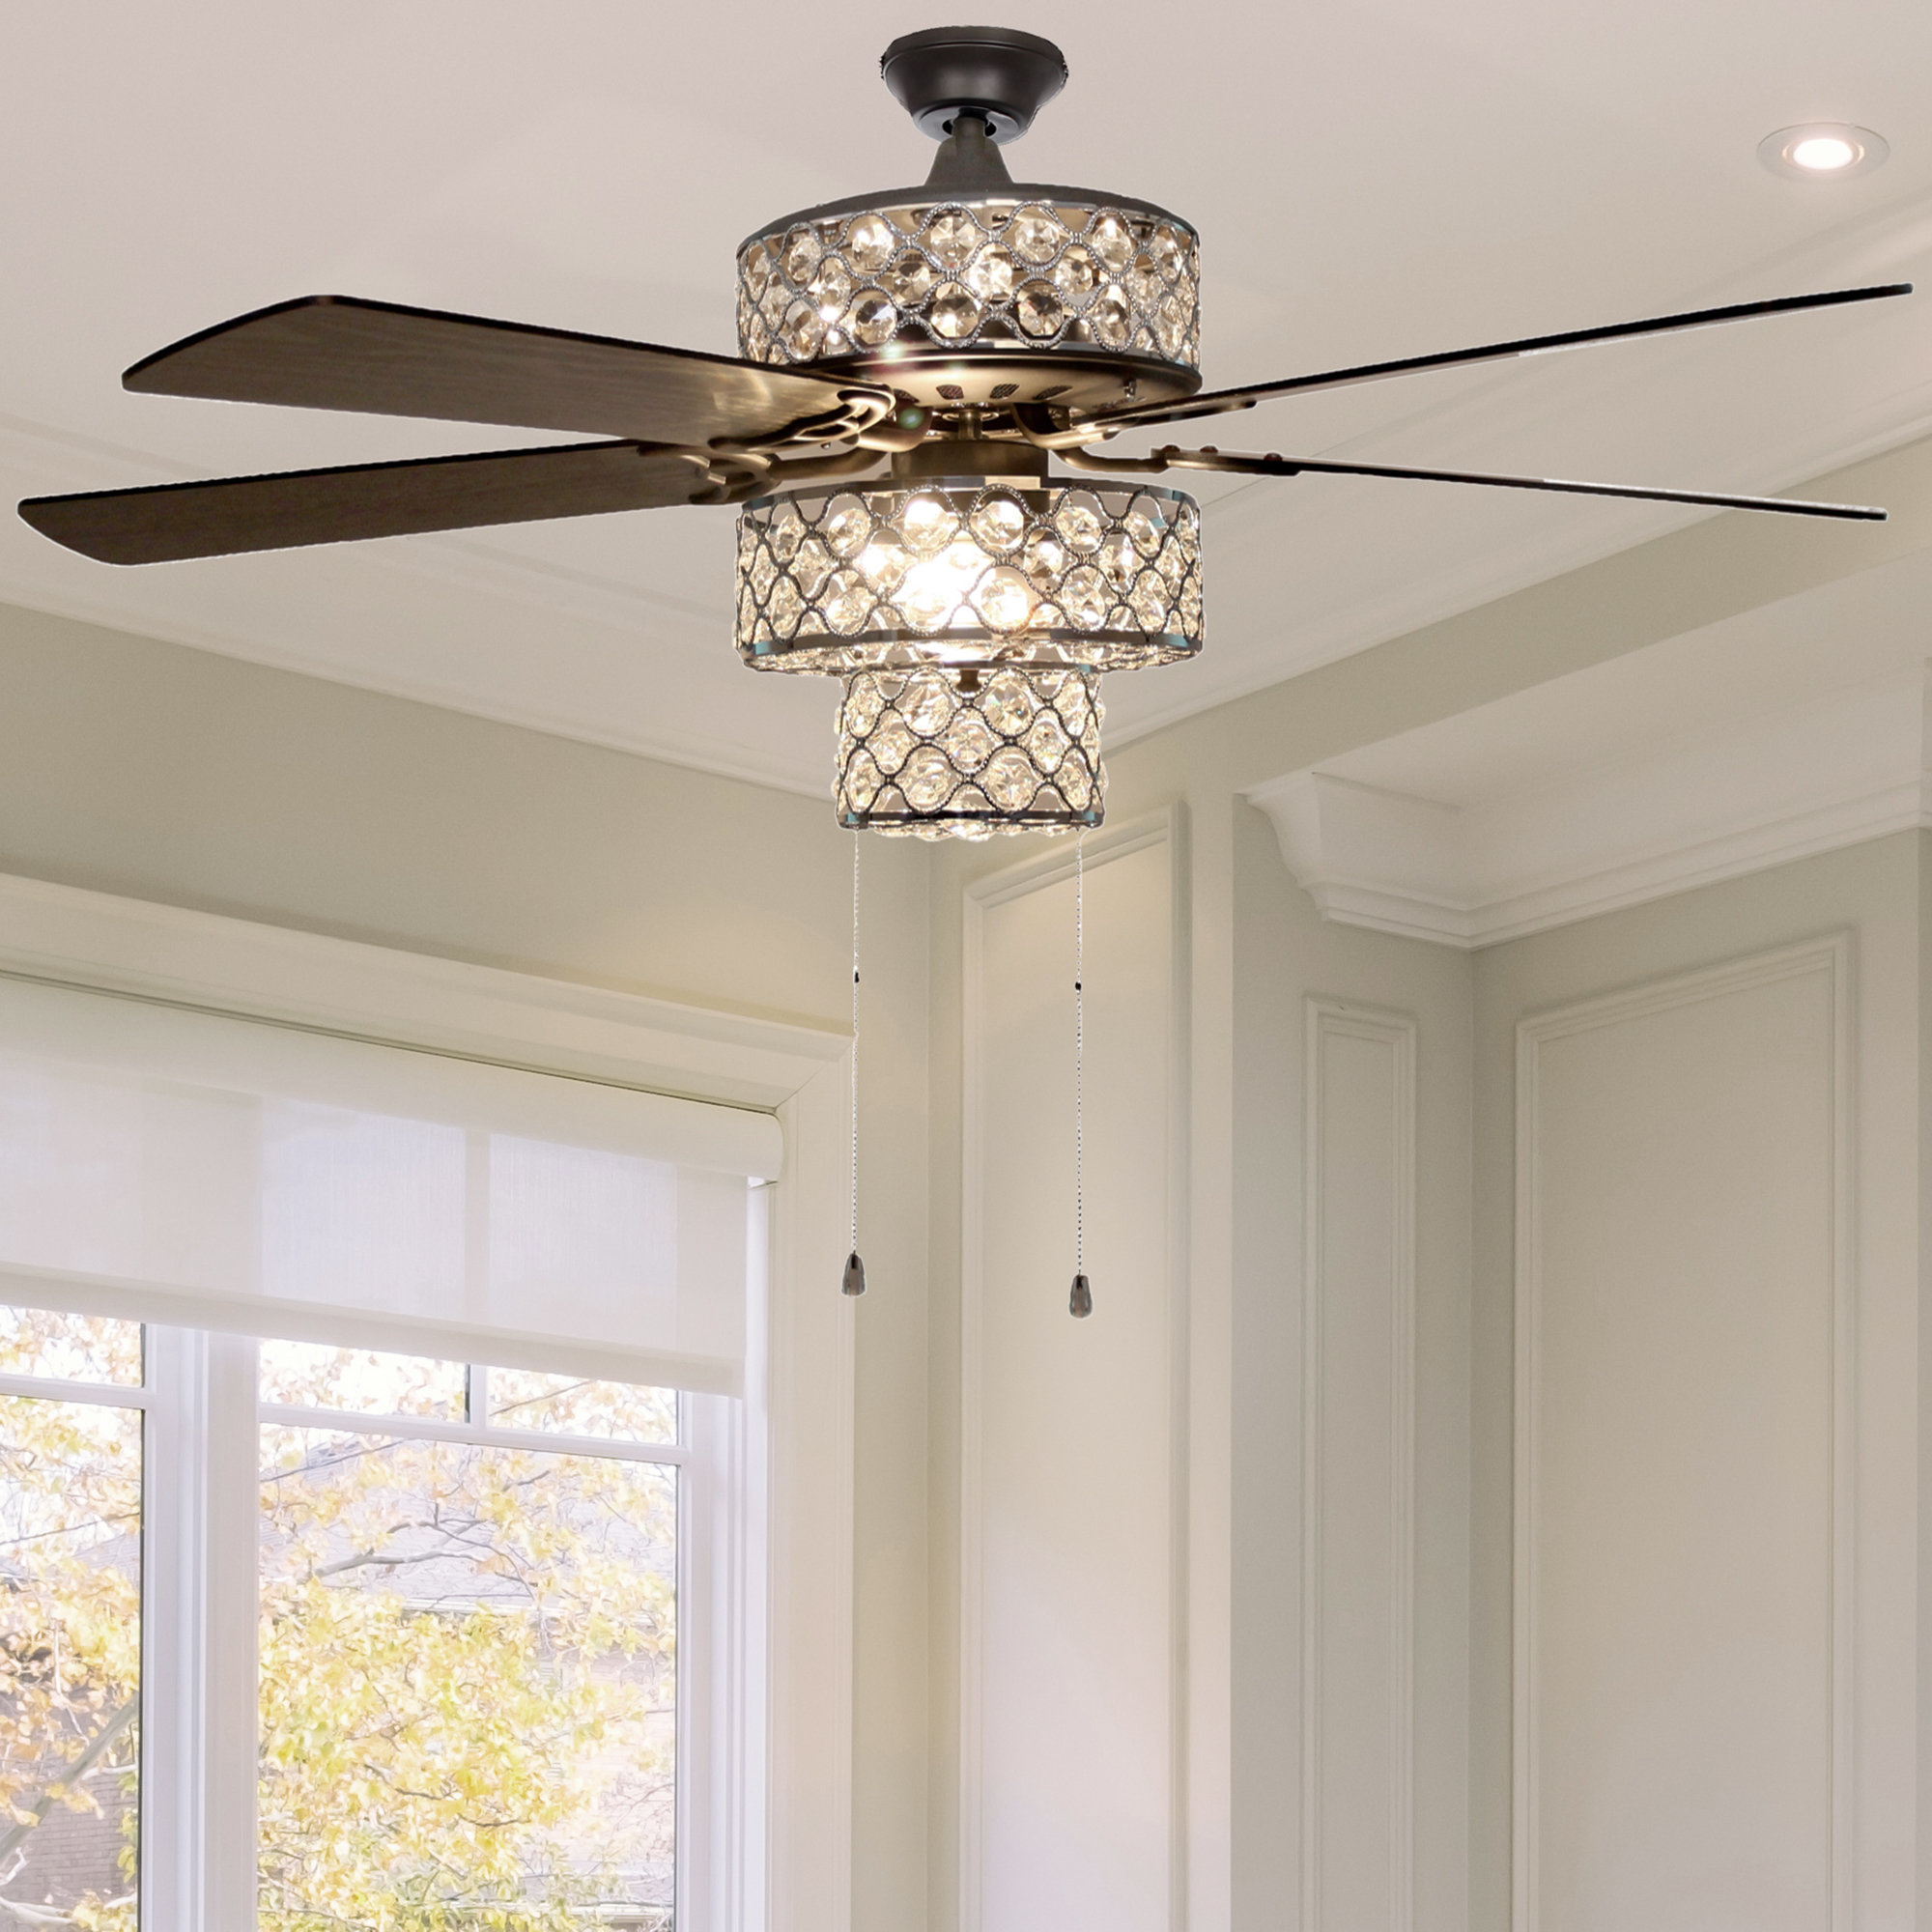 "Norah 5 Blade Ceiling Fans For 2020 52"" Marleigh Tri Tiered 5 Blade Ceiling Fan With Remote, Light Kit Included (View 9 of 20)"